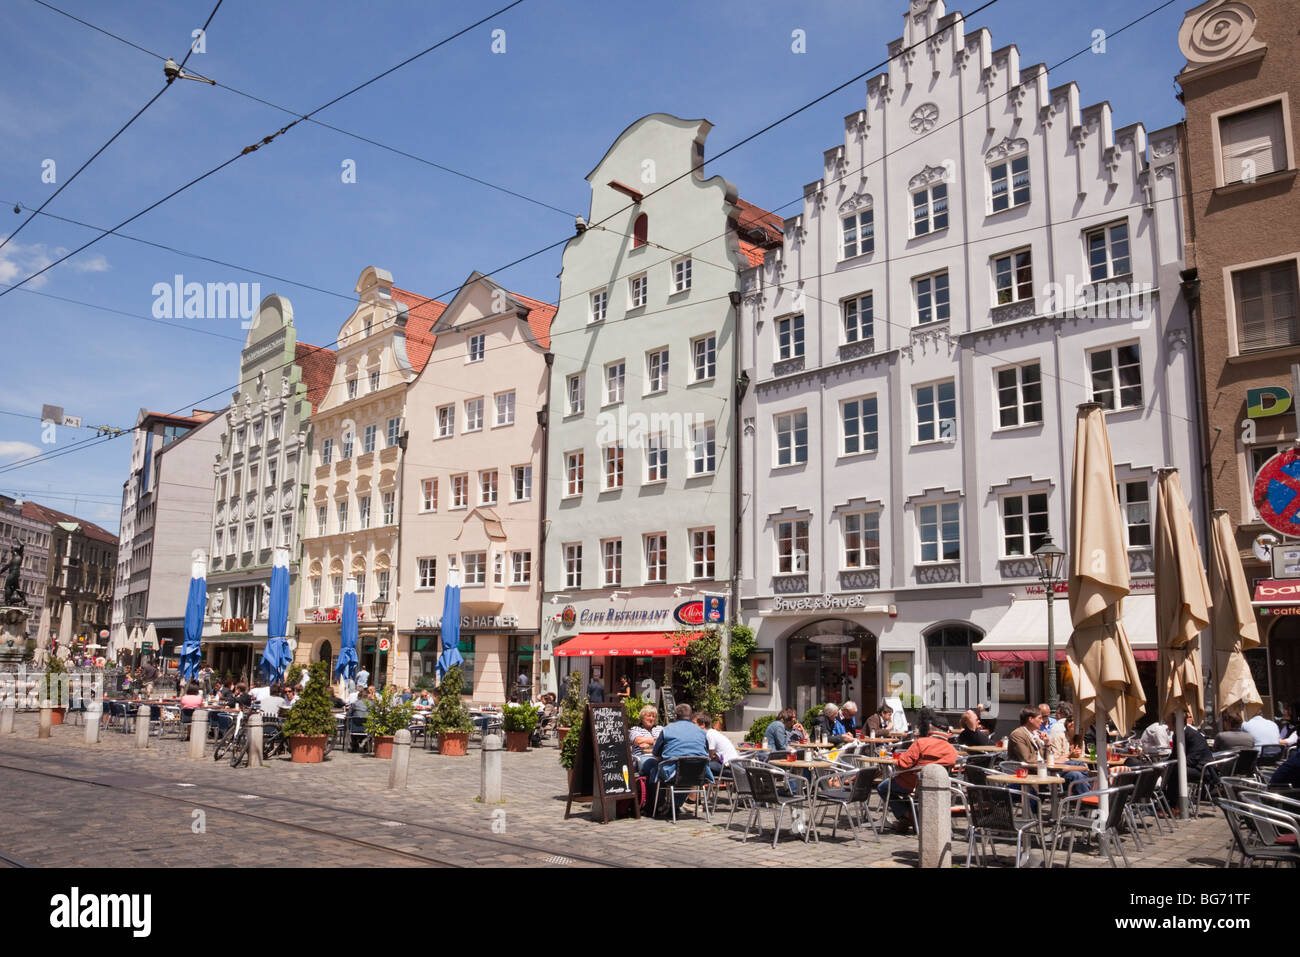 Maximilianstrasse Augsburg Bavaria Germany. City centre street scene with people in pavement cafes - Stock Image